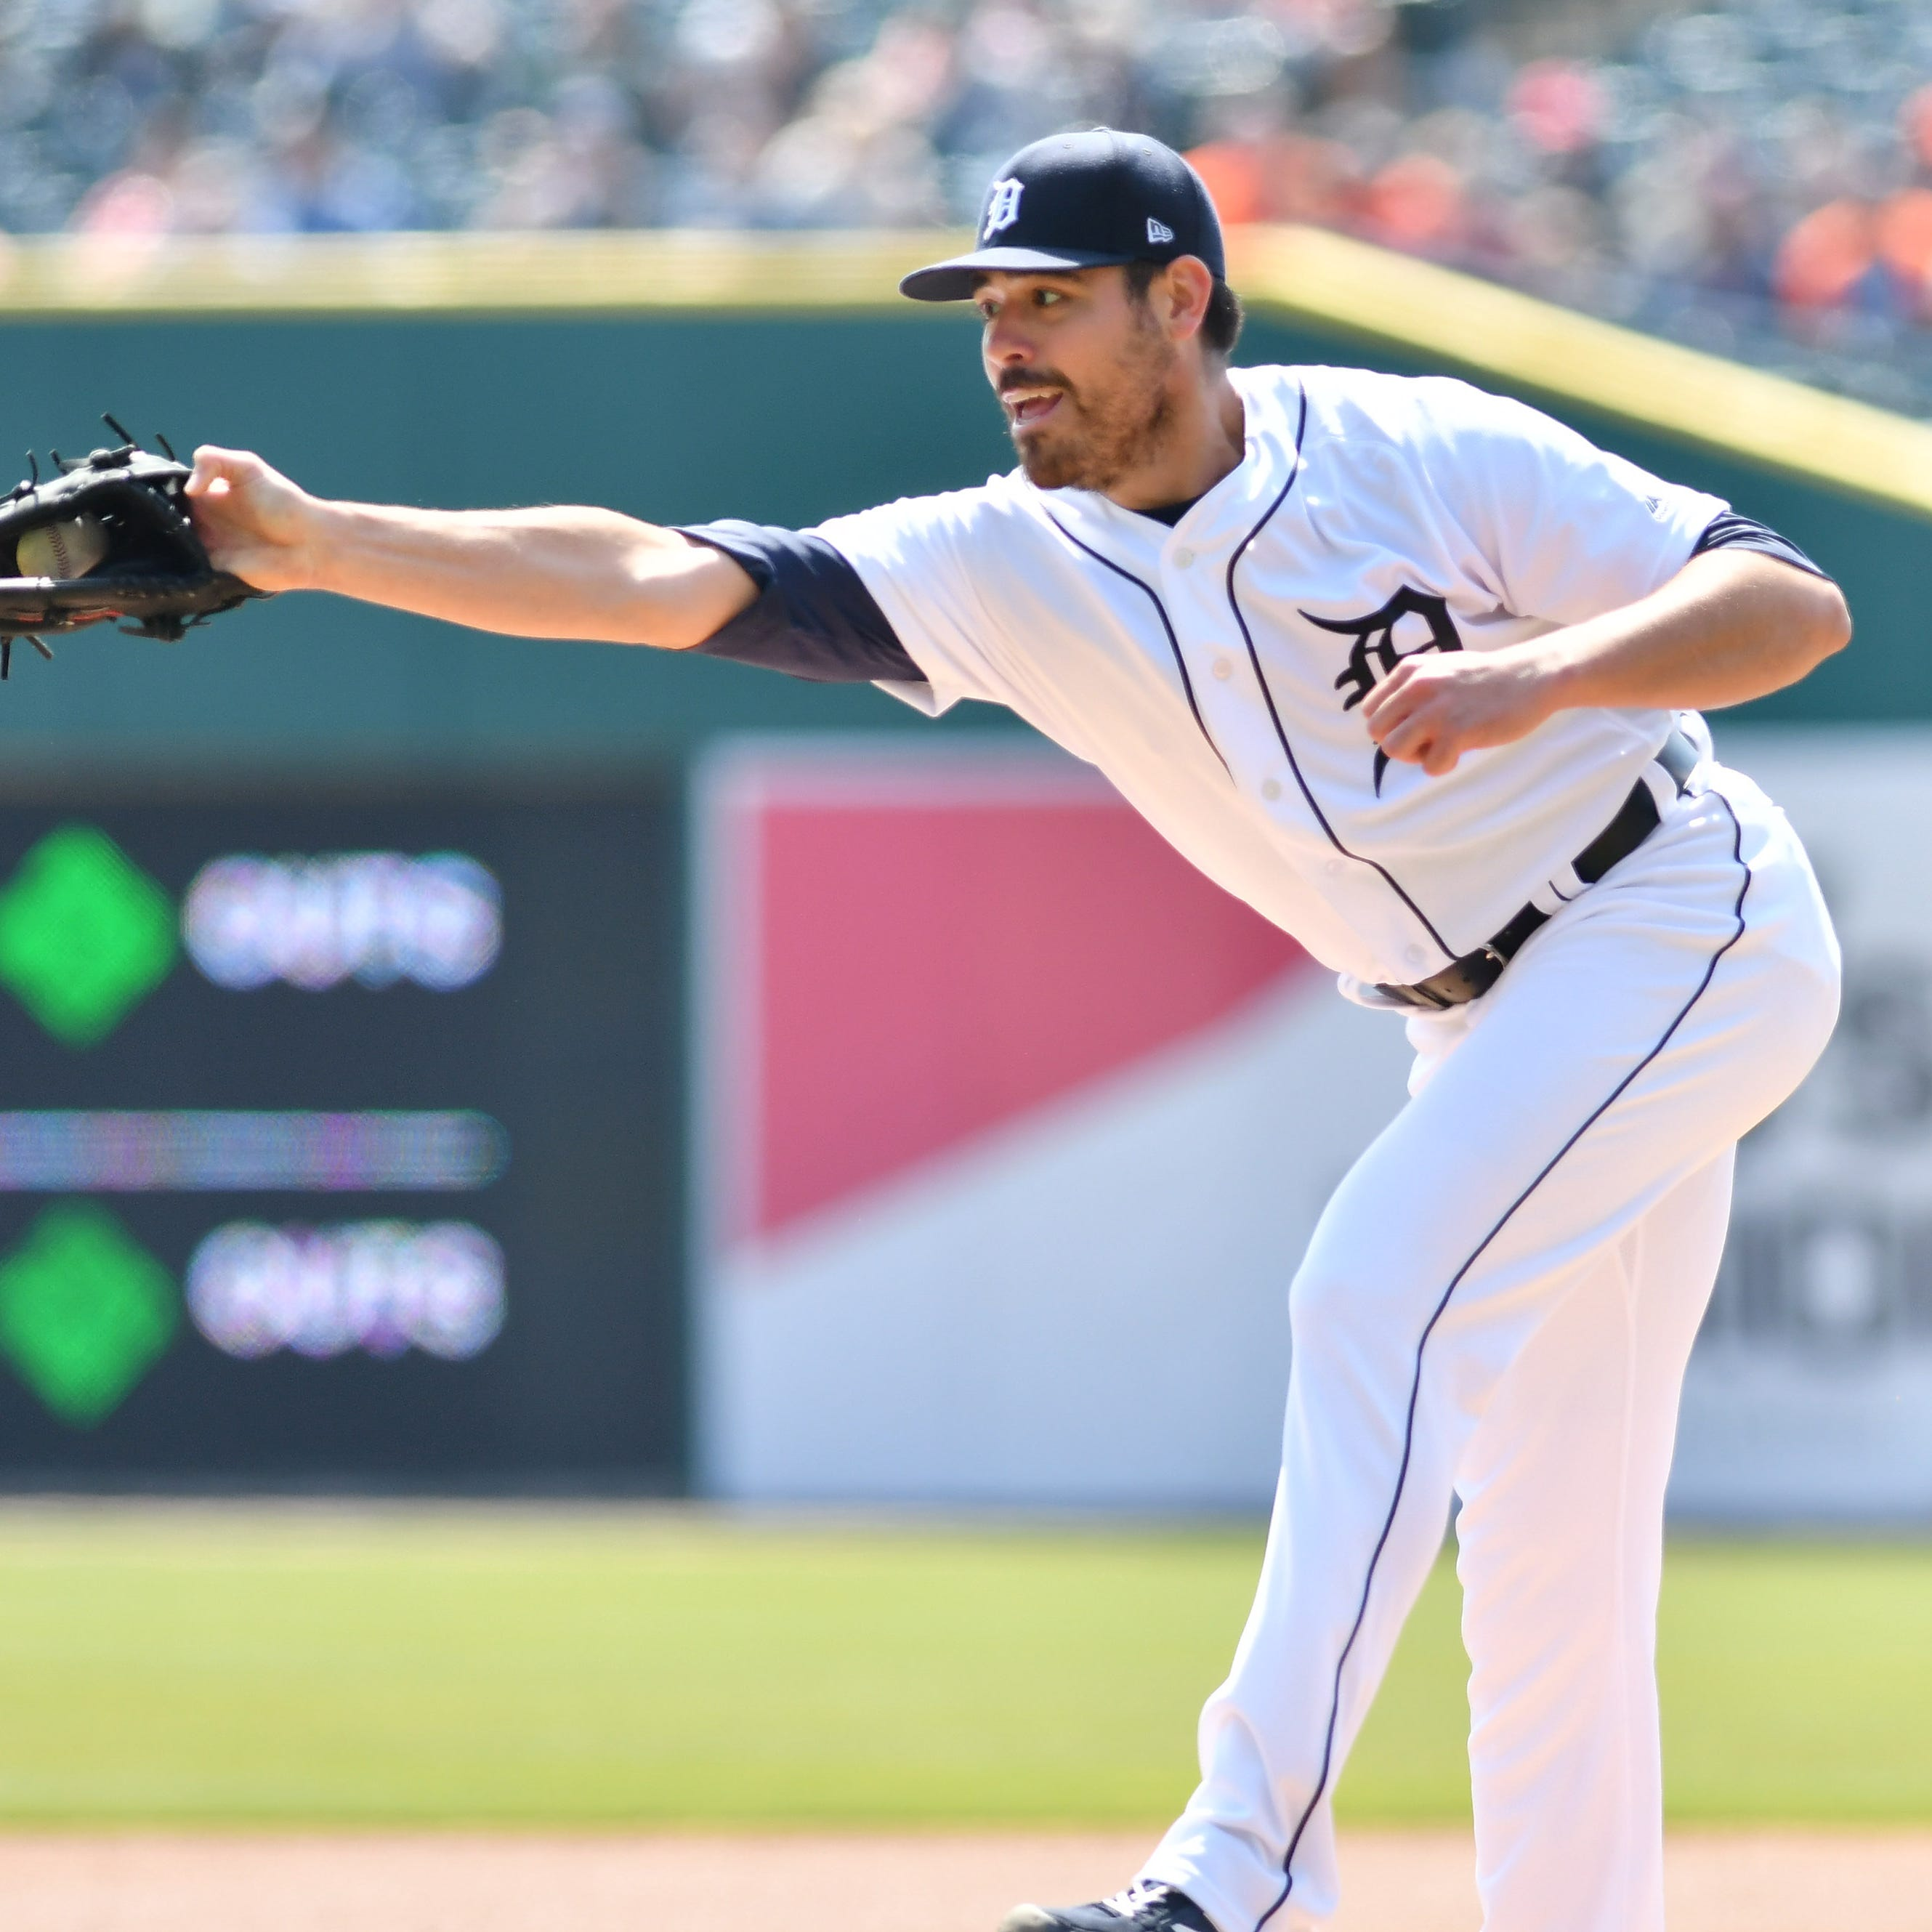 Tigers' Matt Moore encouraged by early rehab work, trying to forestall surgery